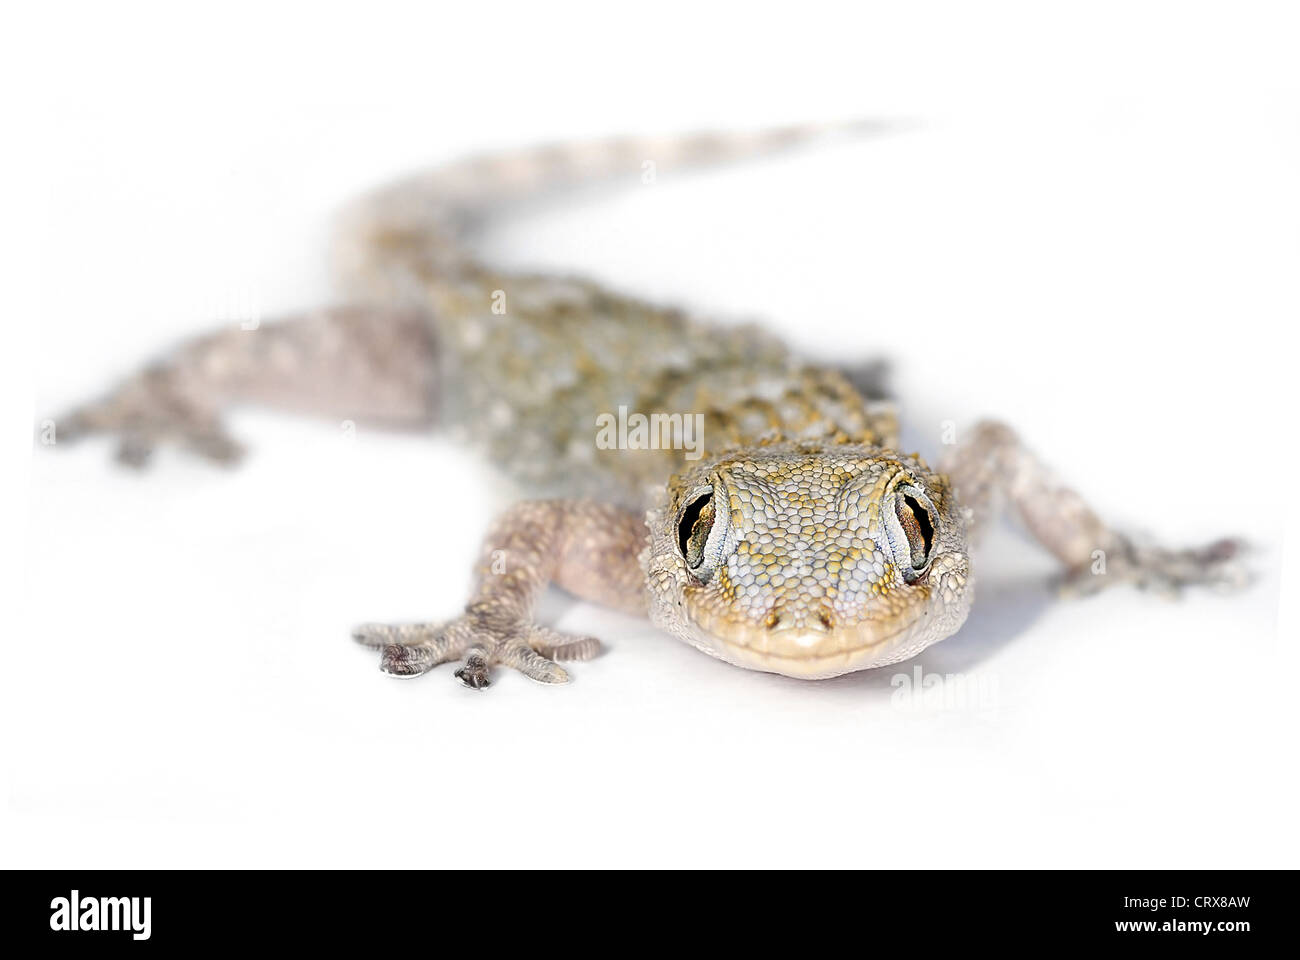 European Common Gecko looking at you, with selective focus on eyes - Stock Image